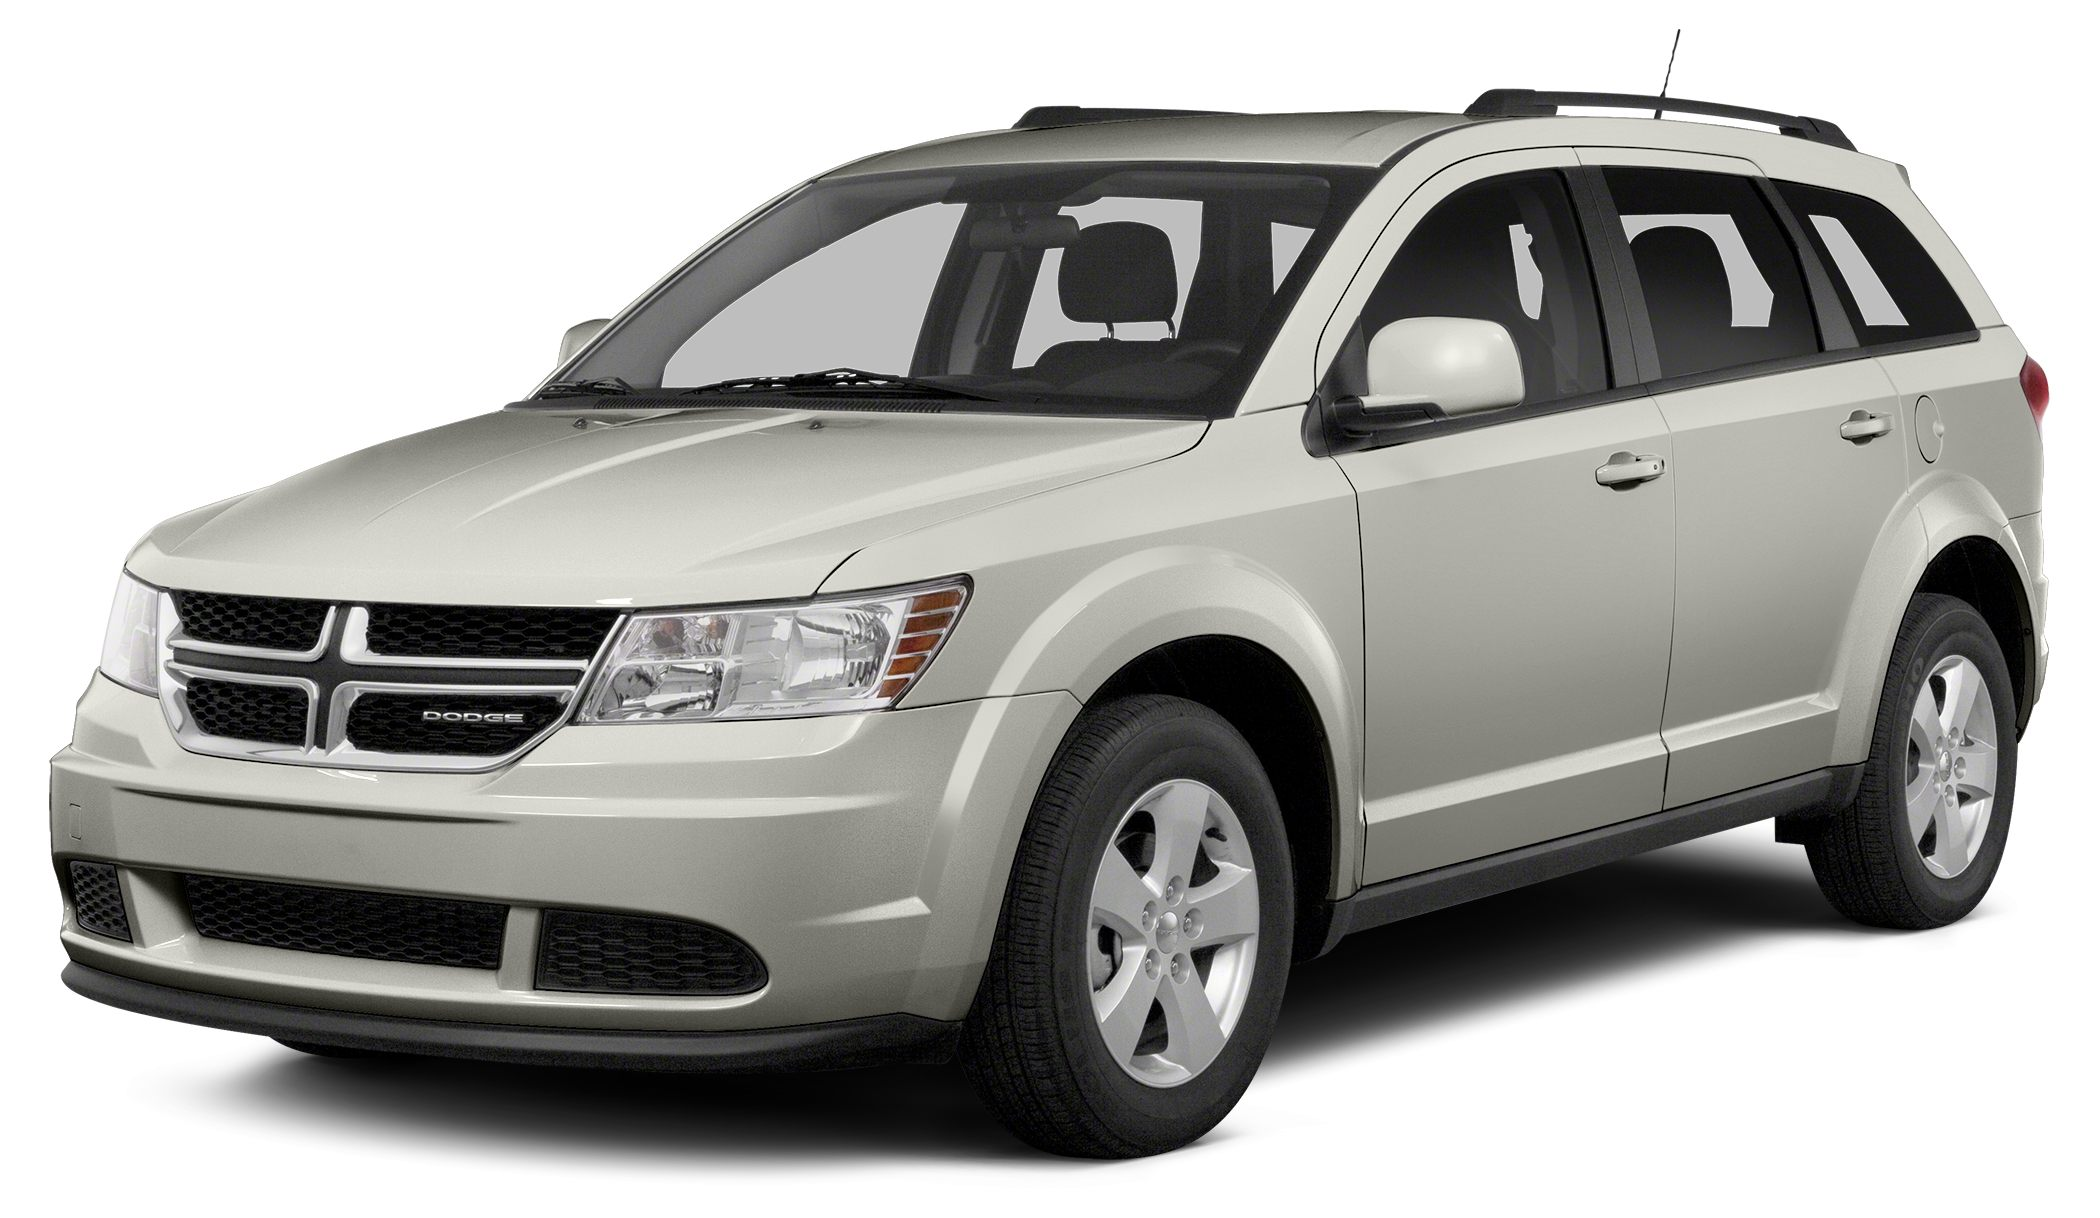 2013 Dodge Journey Crew ONE OWNER WITH LOW MILES CLEAN CARFAX Journey Crew In Immaculate Conditi